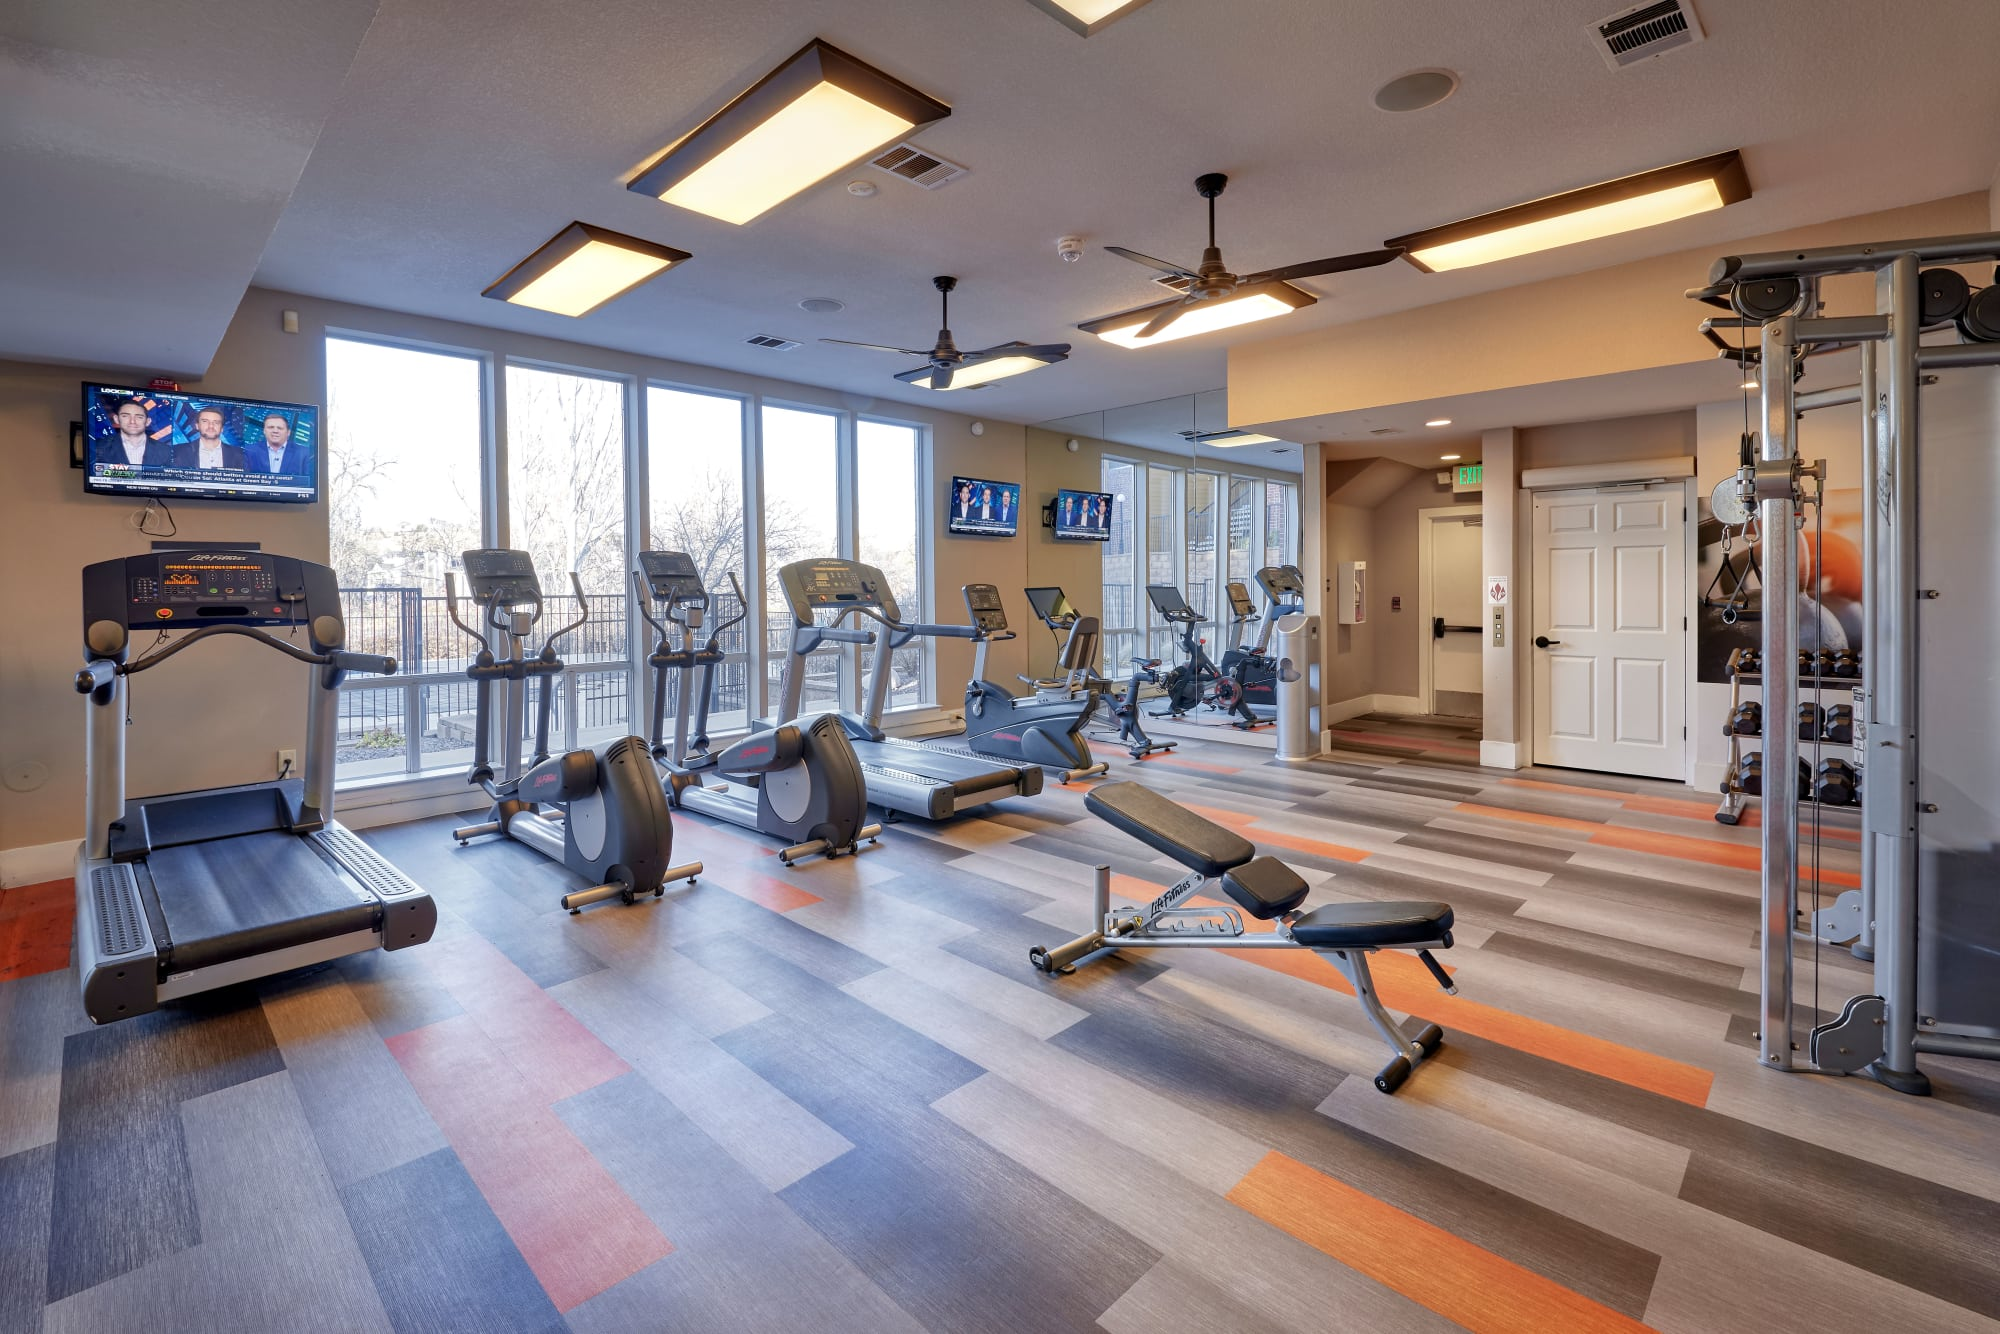 The newly renovated fitness center at The Crossings at Bear Creek Apartments in Lakewood, Colorado